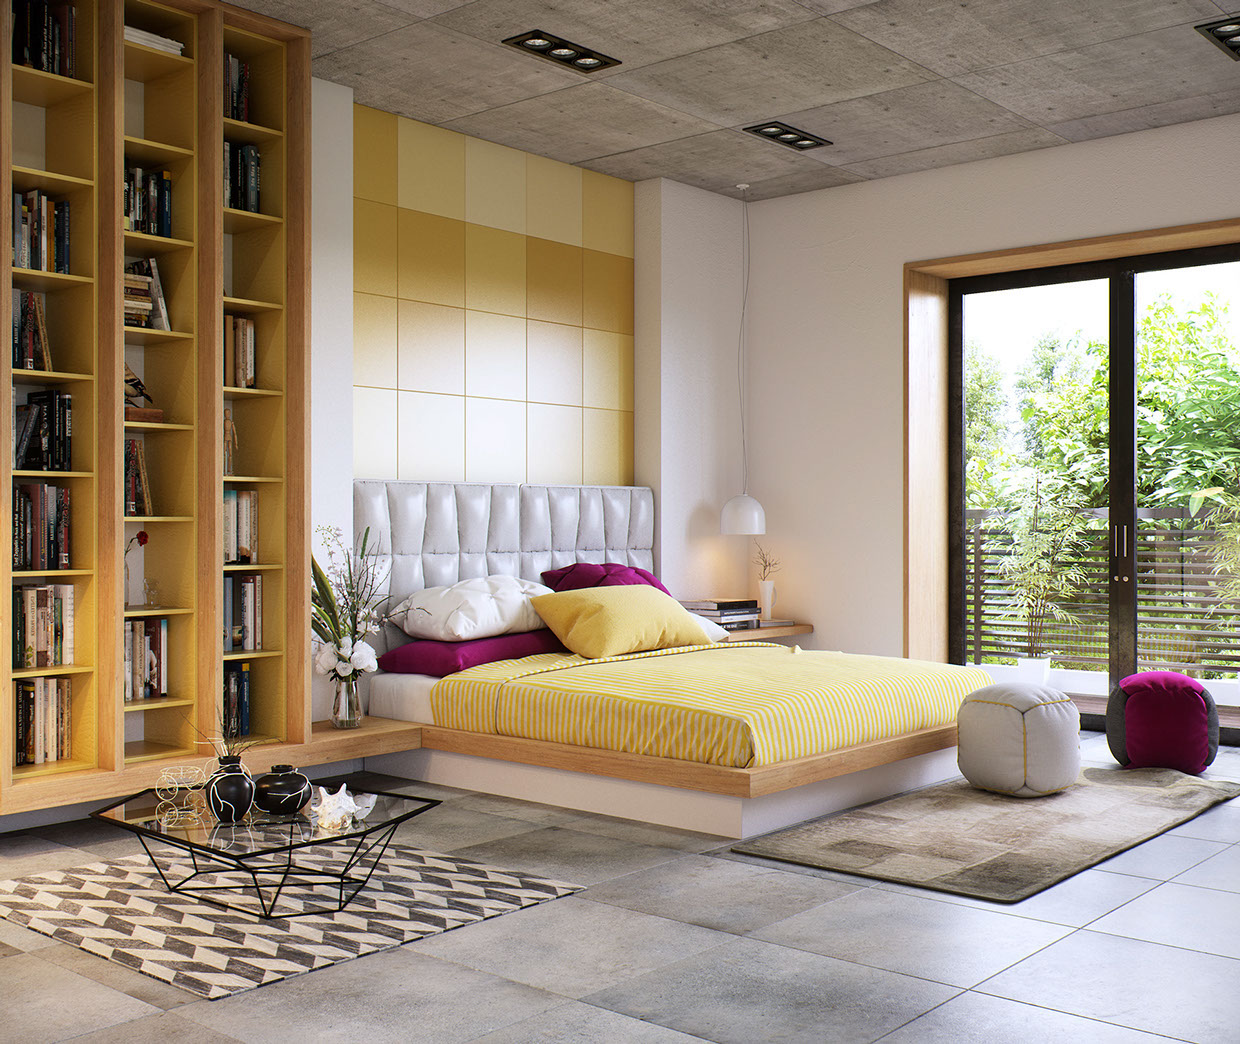 White Tufted Headboard - 8 creatively designed bedrooms in detail